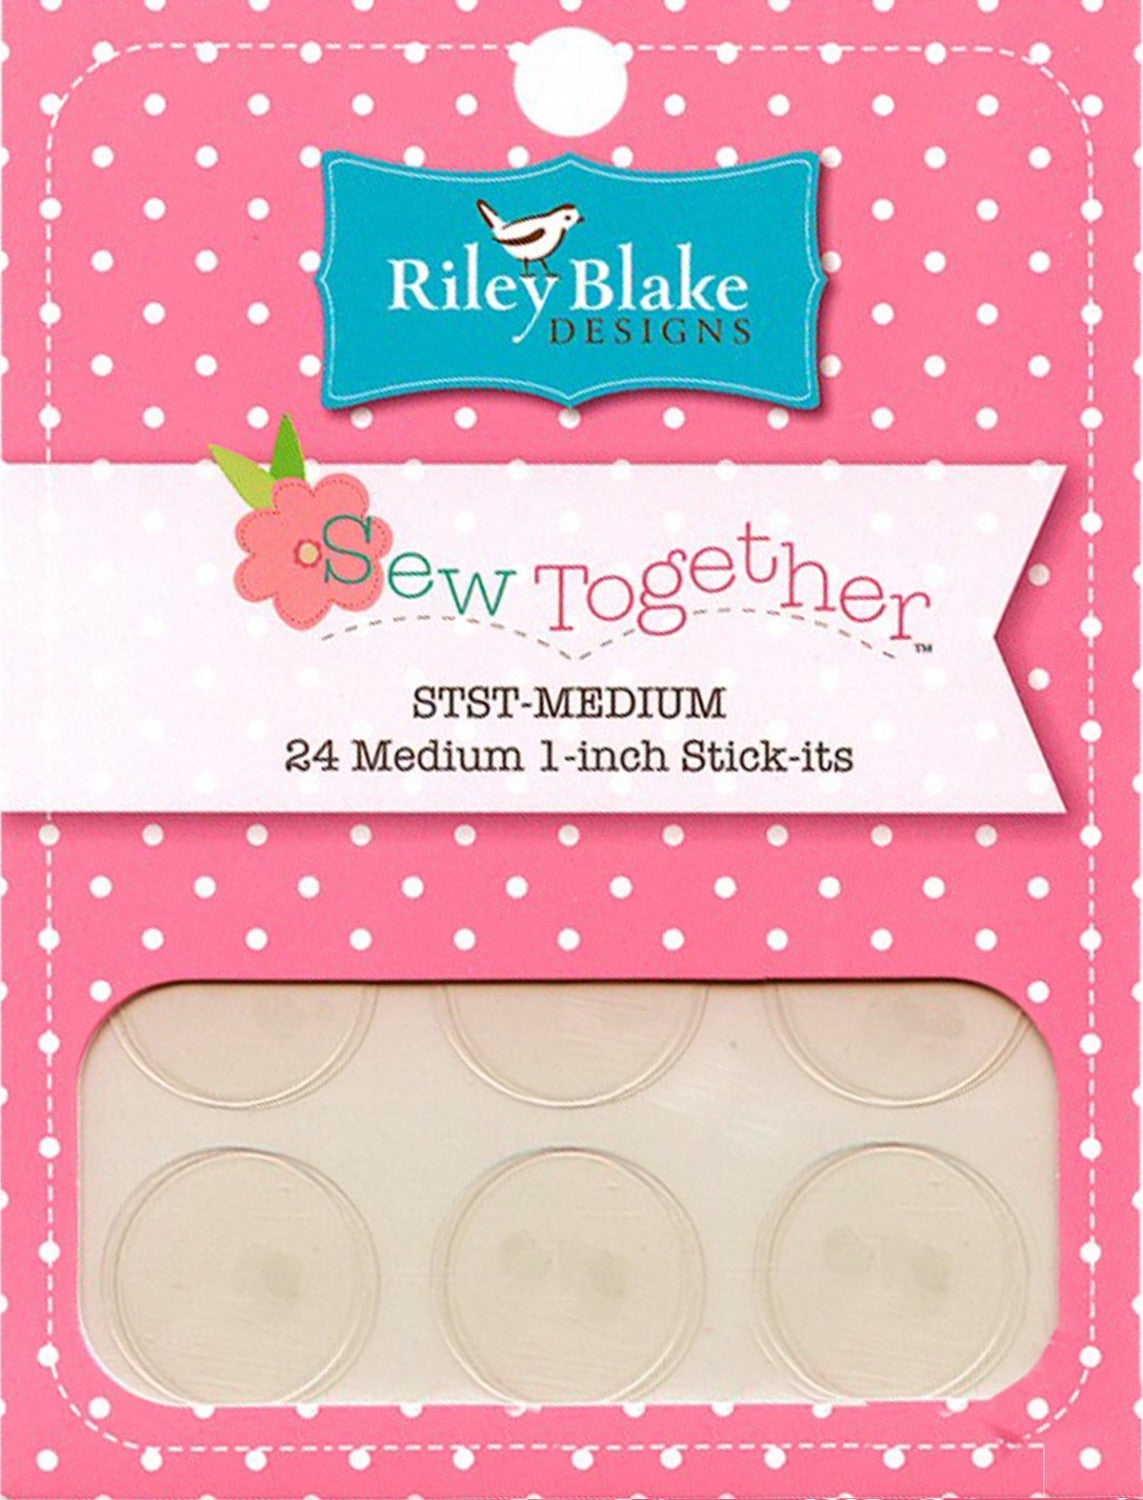 Sew Together Glue Dots By Riley Blake Designs